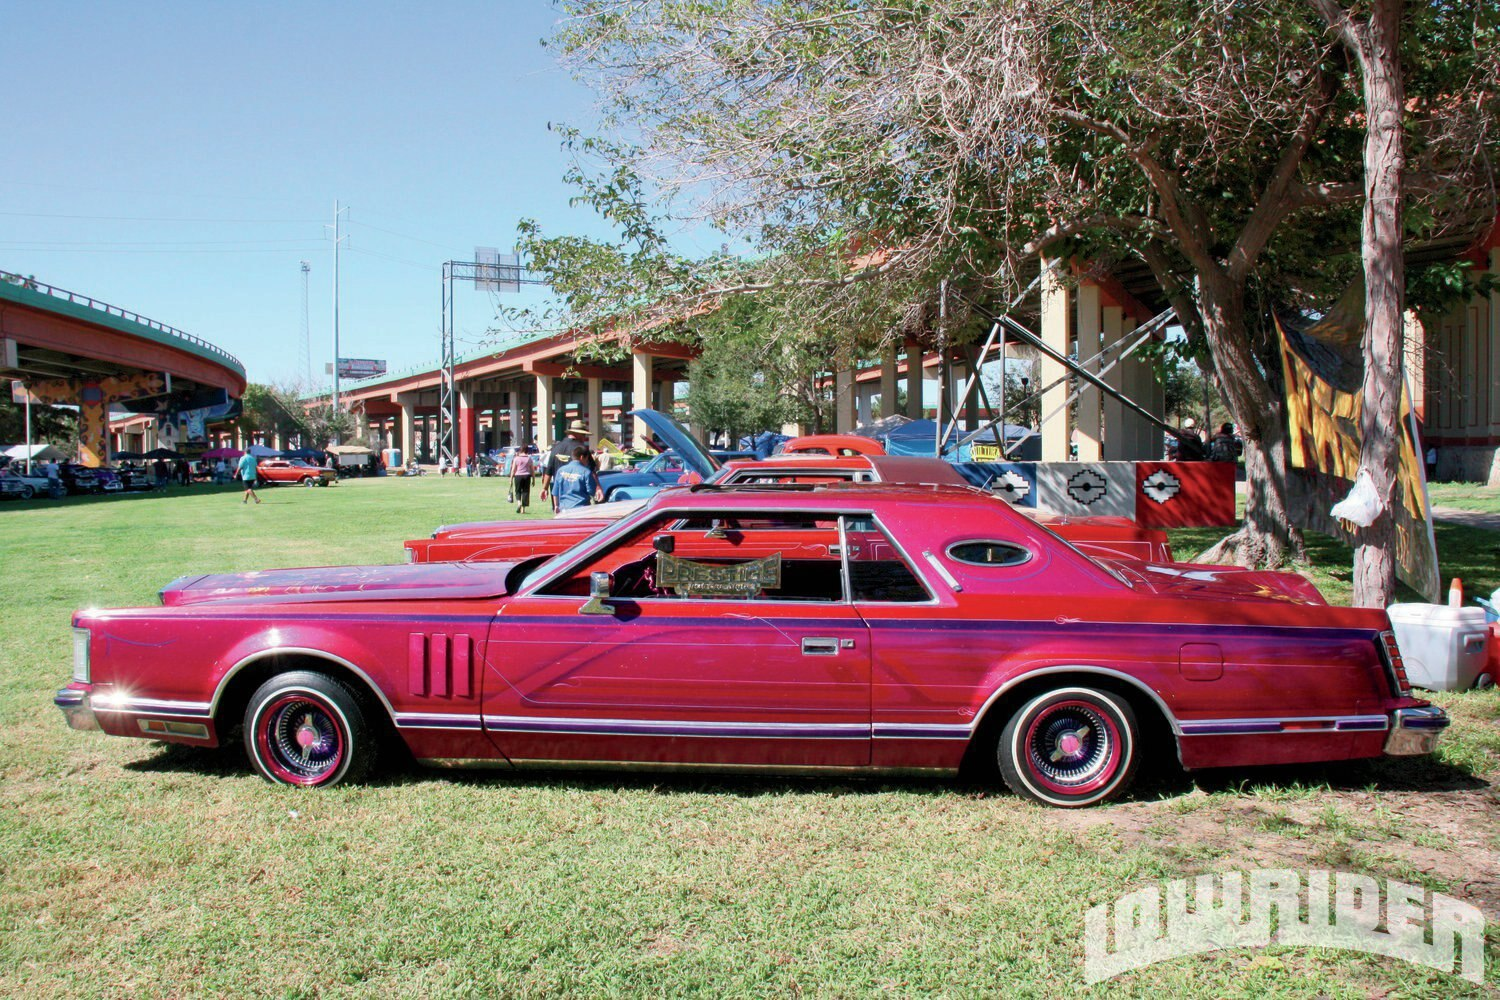 9th Annual Chicano Art And Car Show Lowrider Magazine